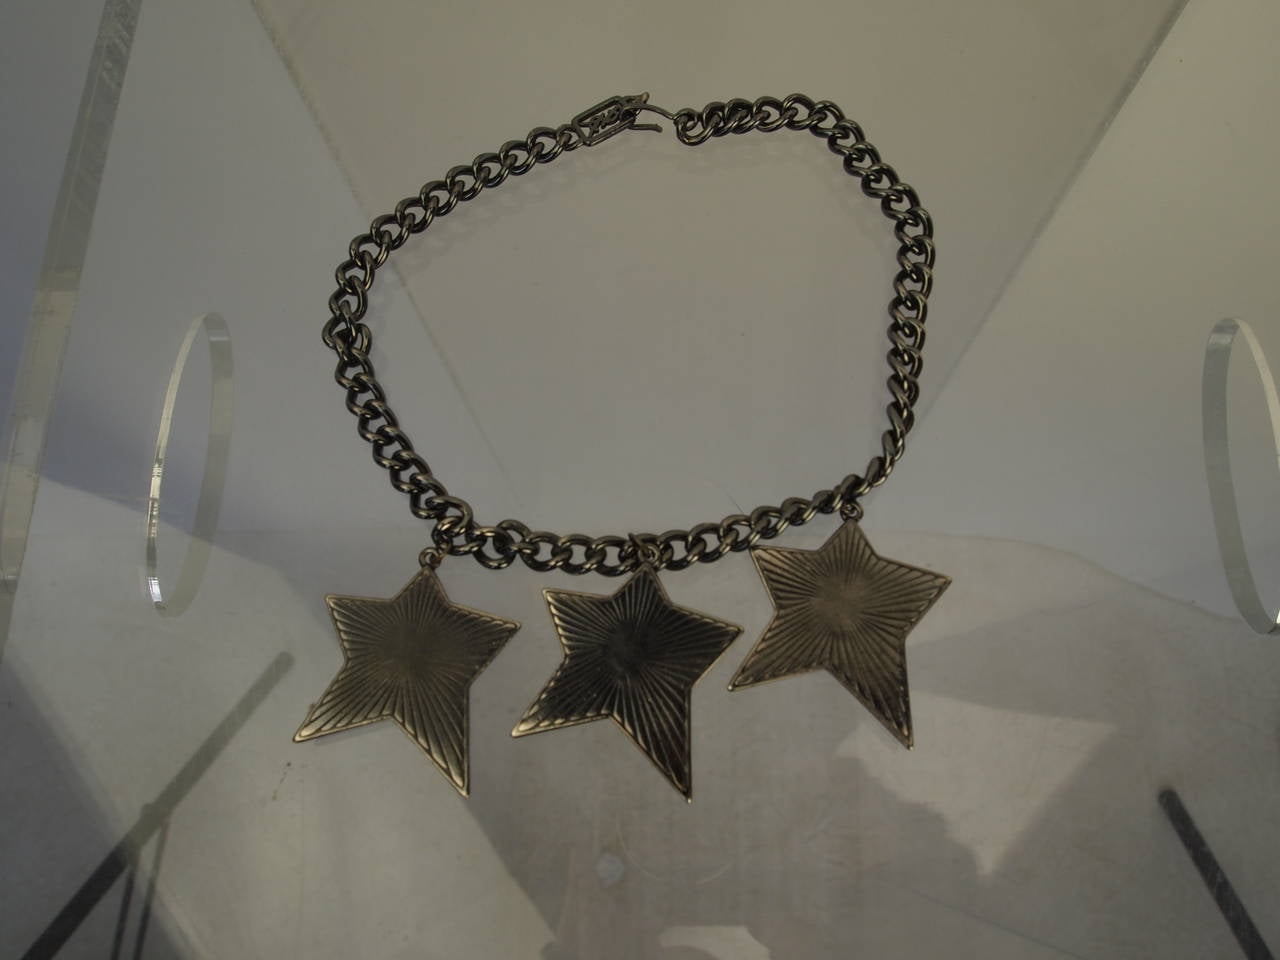 Yves Saint Laurent chain necklace with green, red and yellow enameled stars and hook closure.